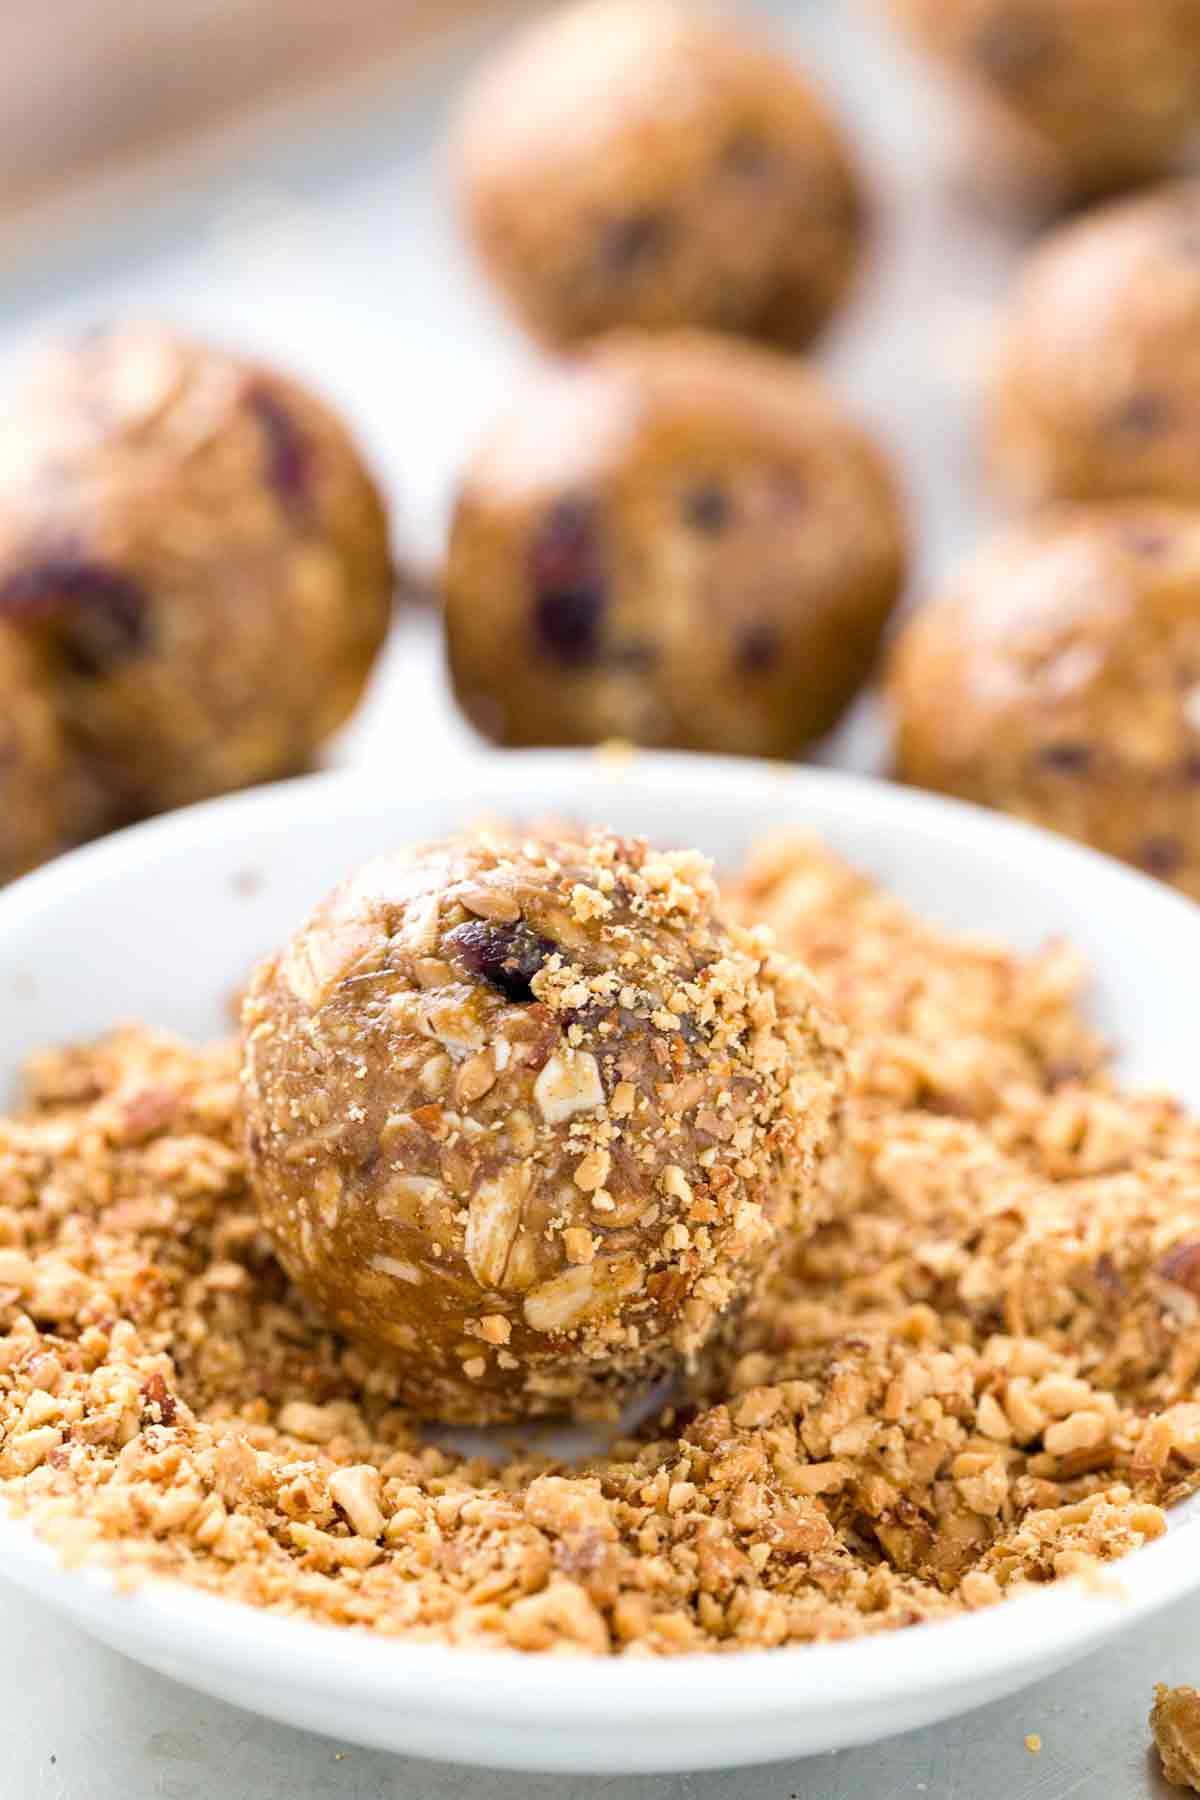 Roll and coat the outside of the energy bites in nuts or oats